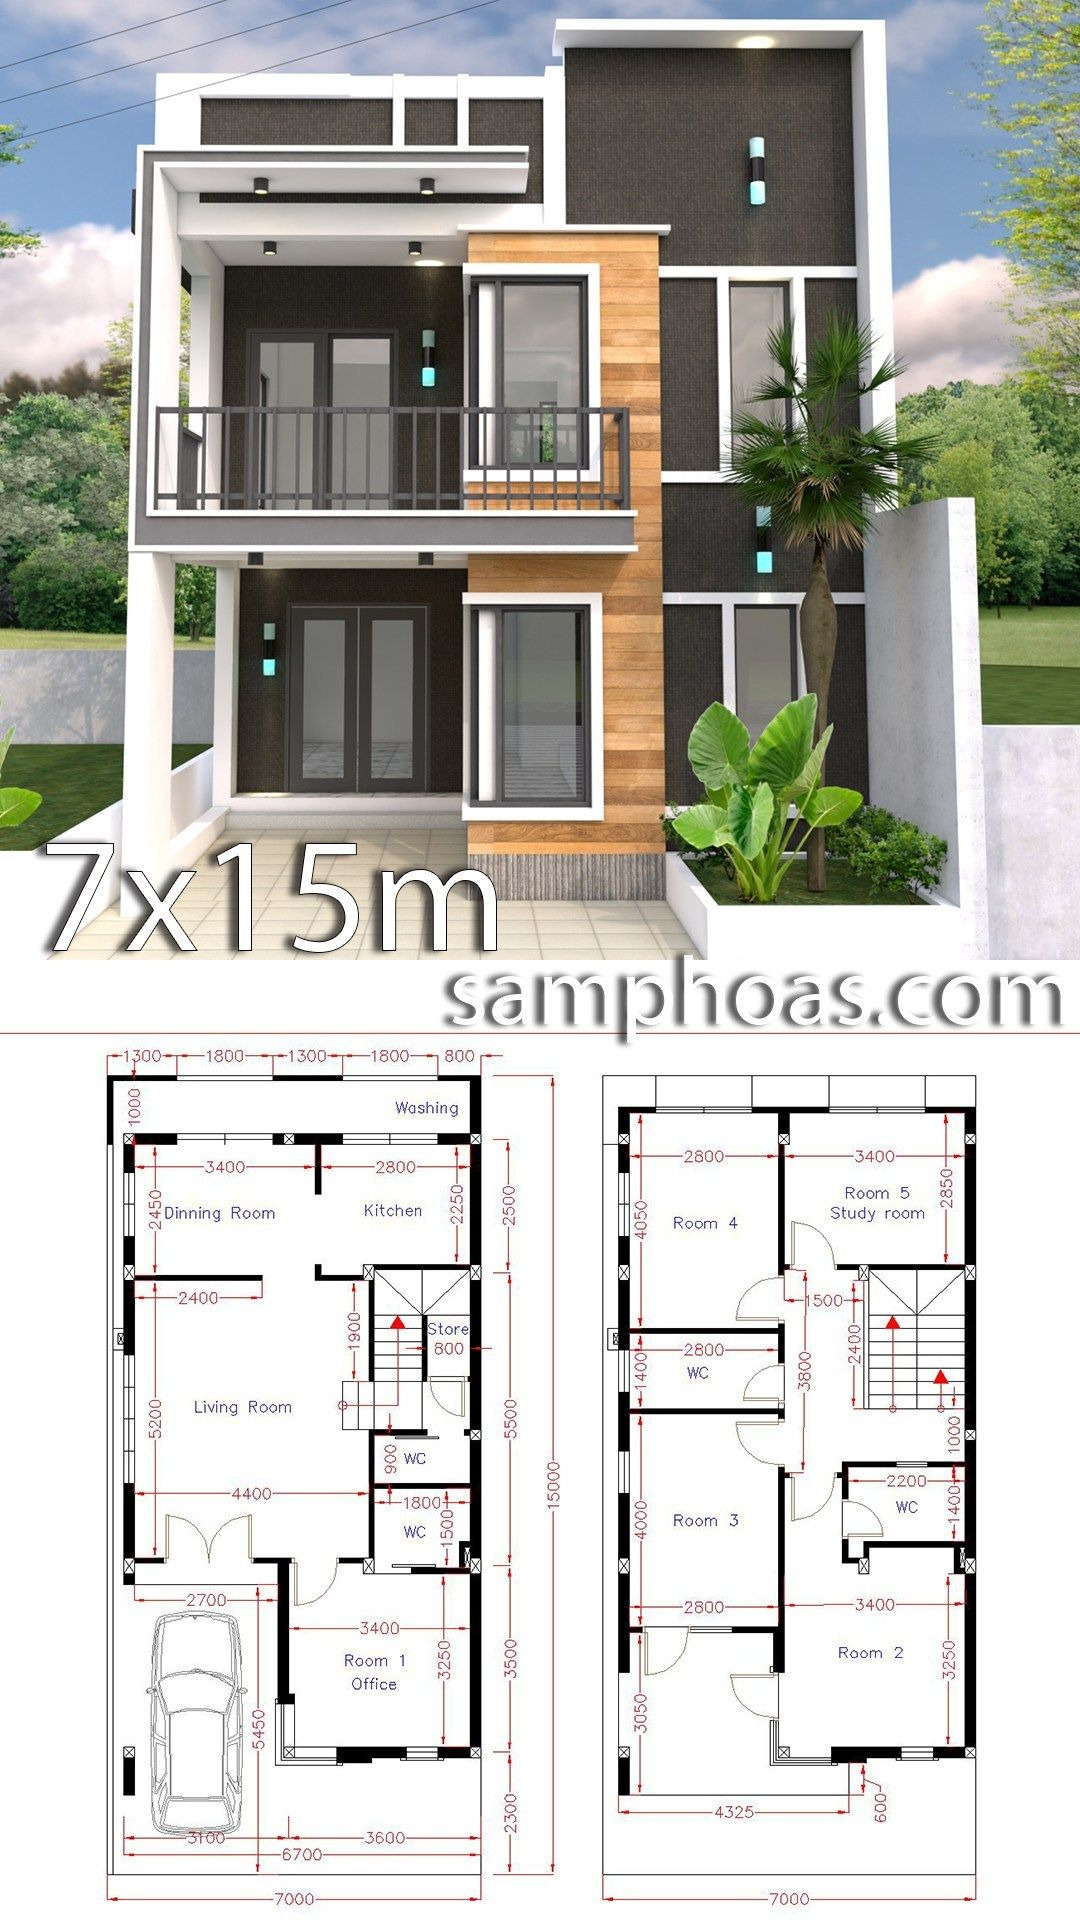 Custom House Plans with Photos Inspirational Home Design Plan 7x15m with 5 Bedrooms Samphoas Plansearch